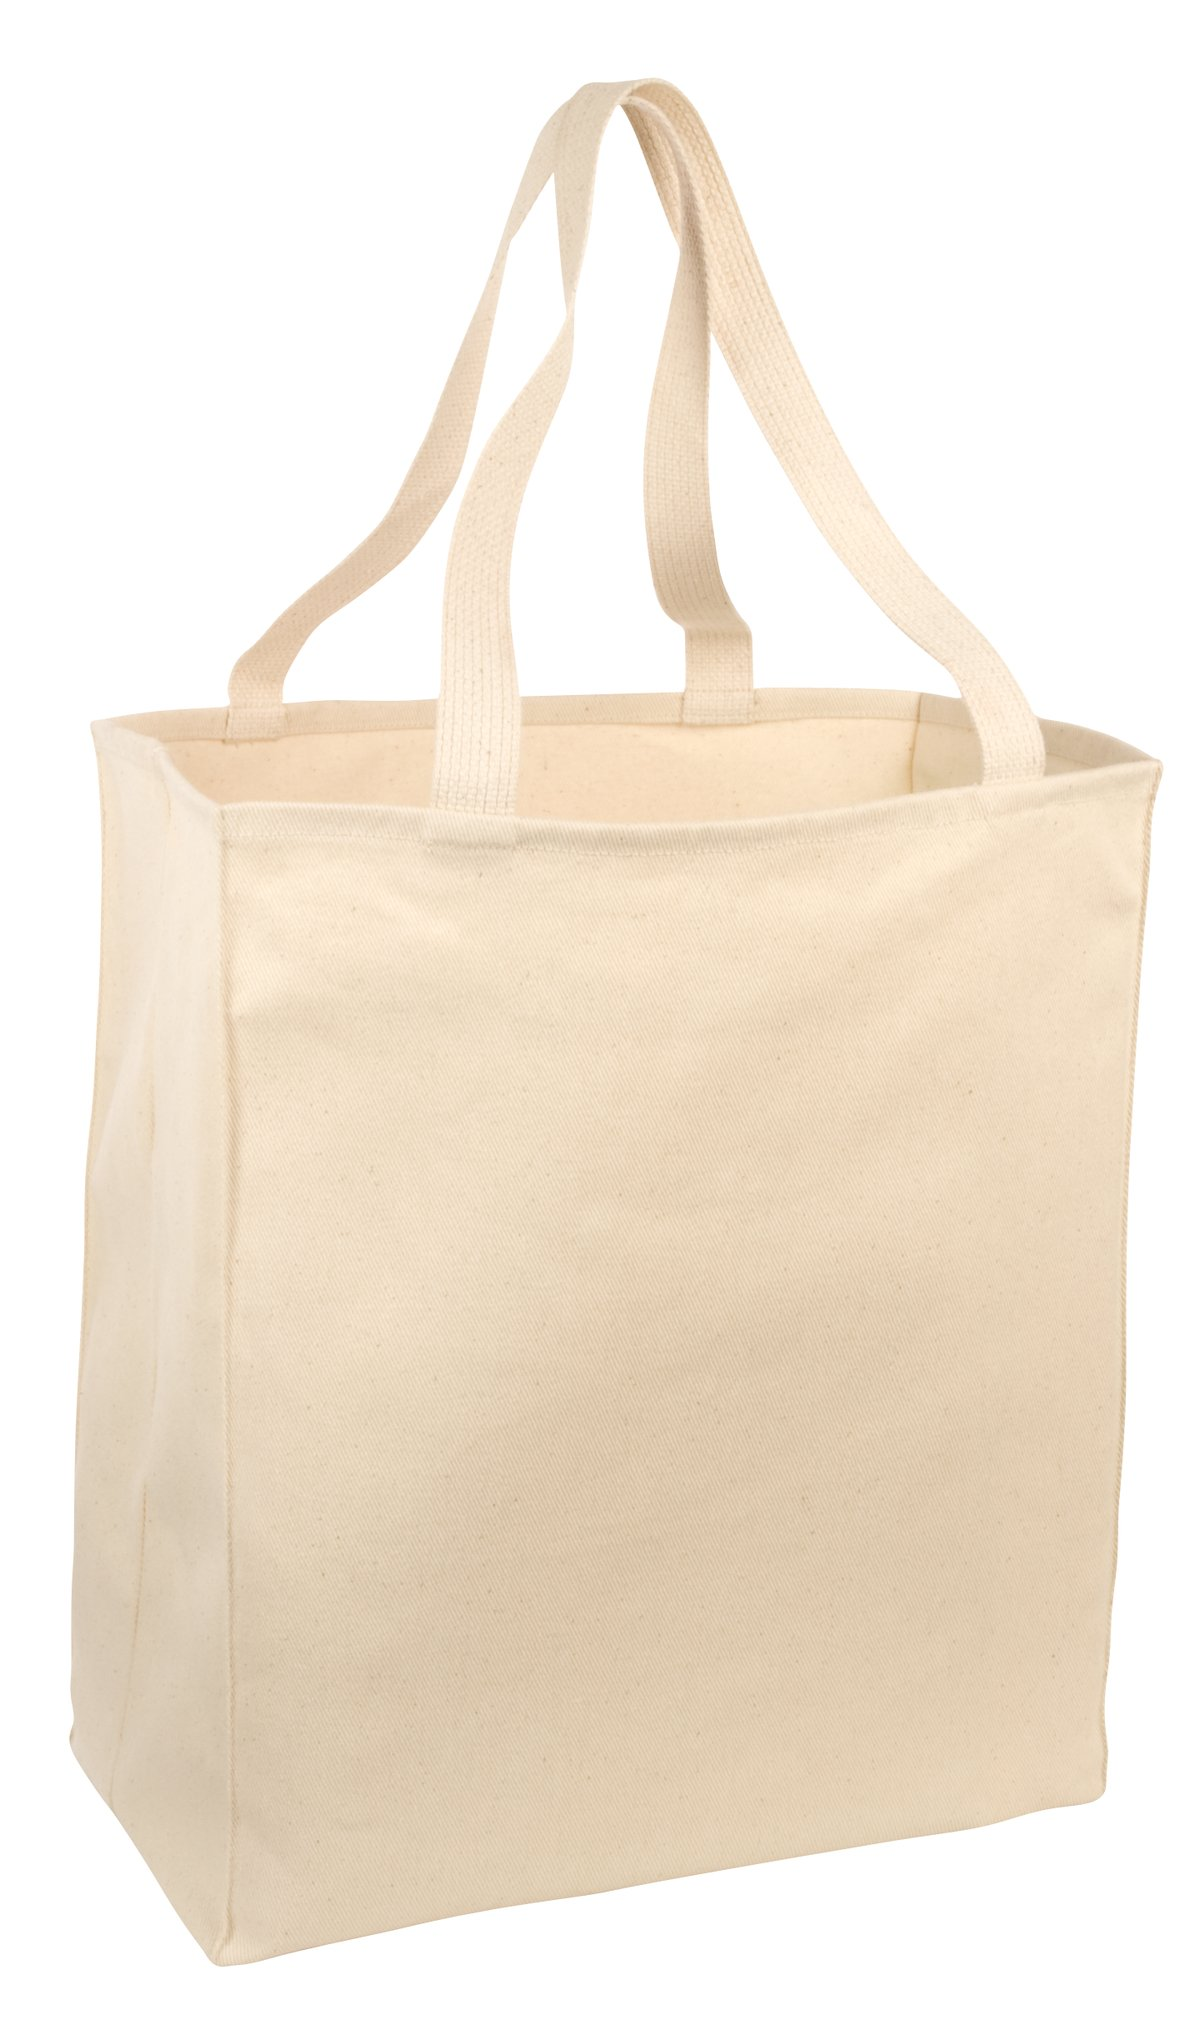 Port Authority ®  Over-the-Shoulder Grocery Tote. B110 - Natural